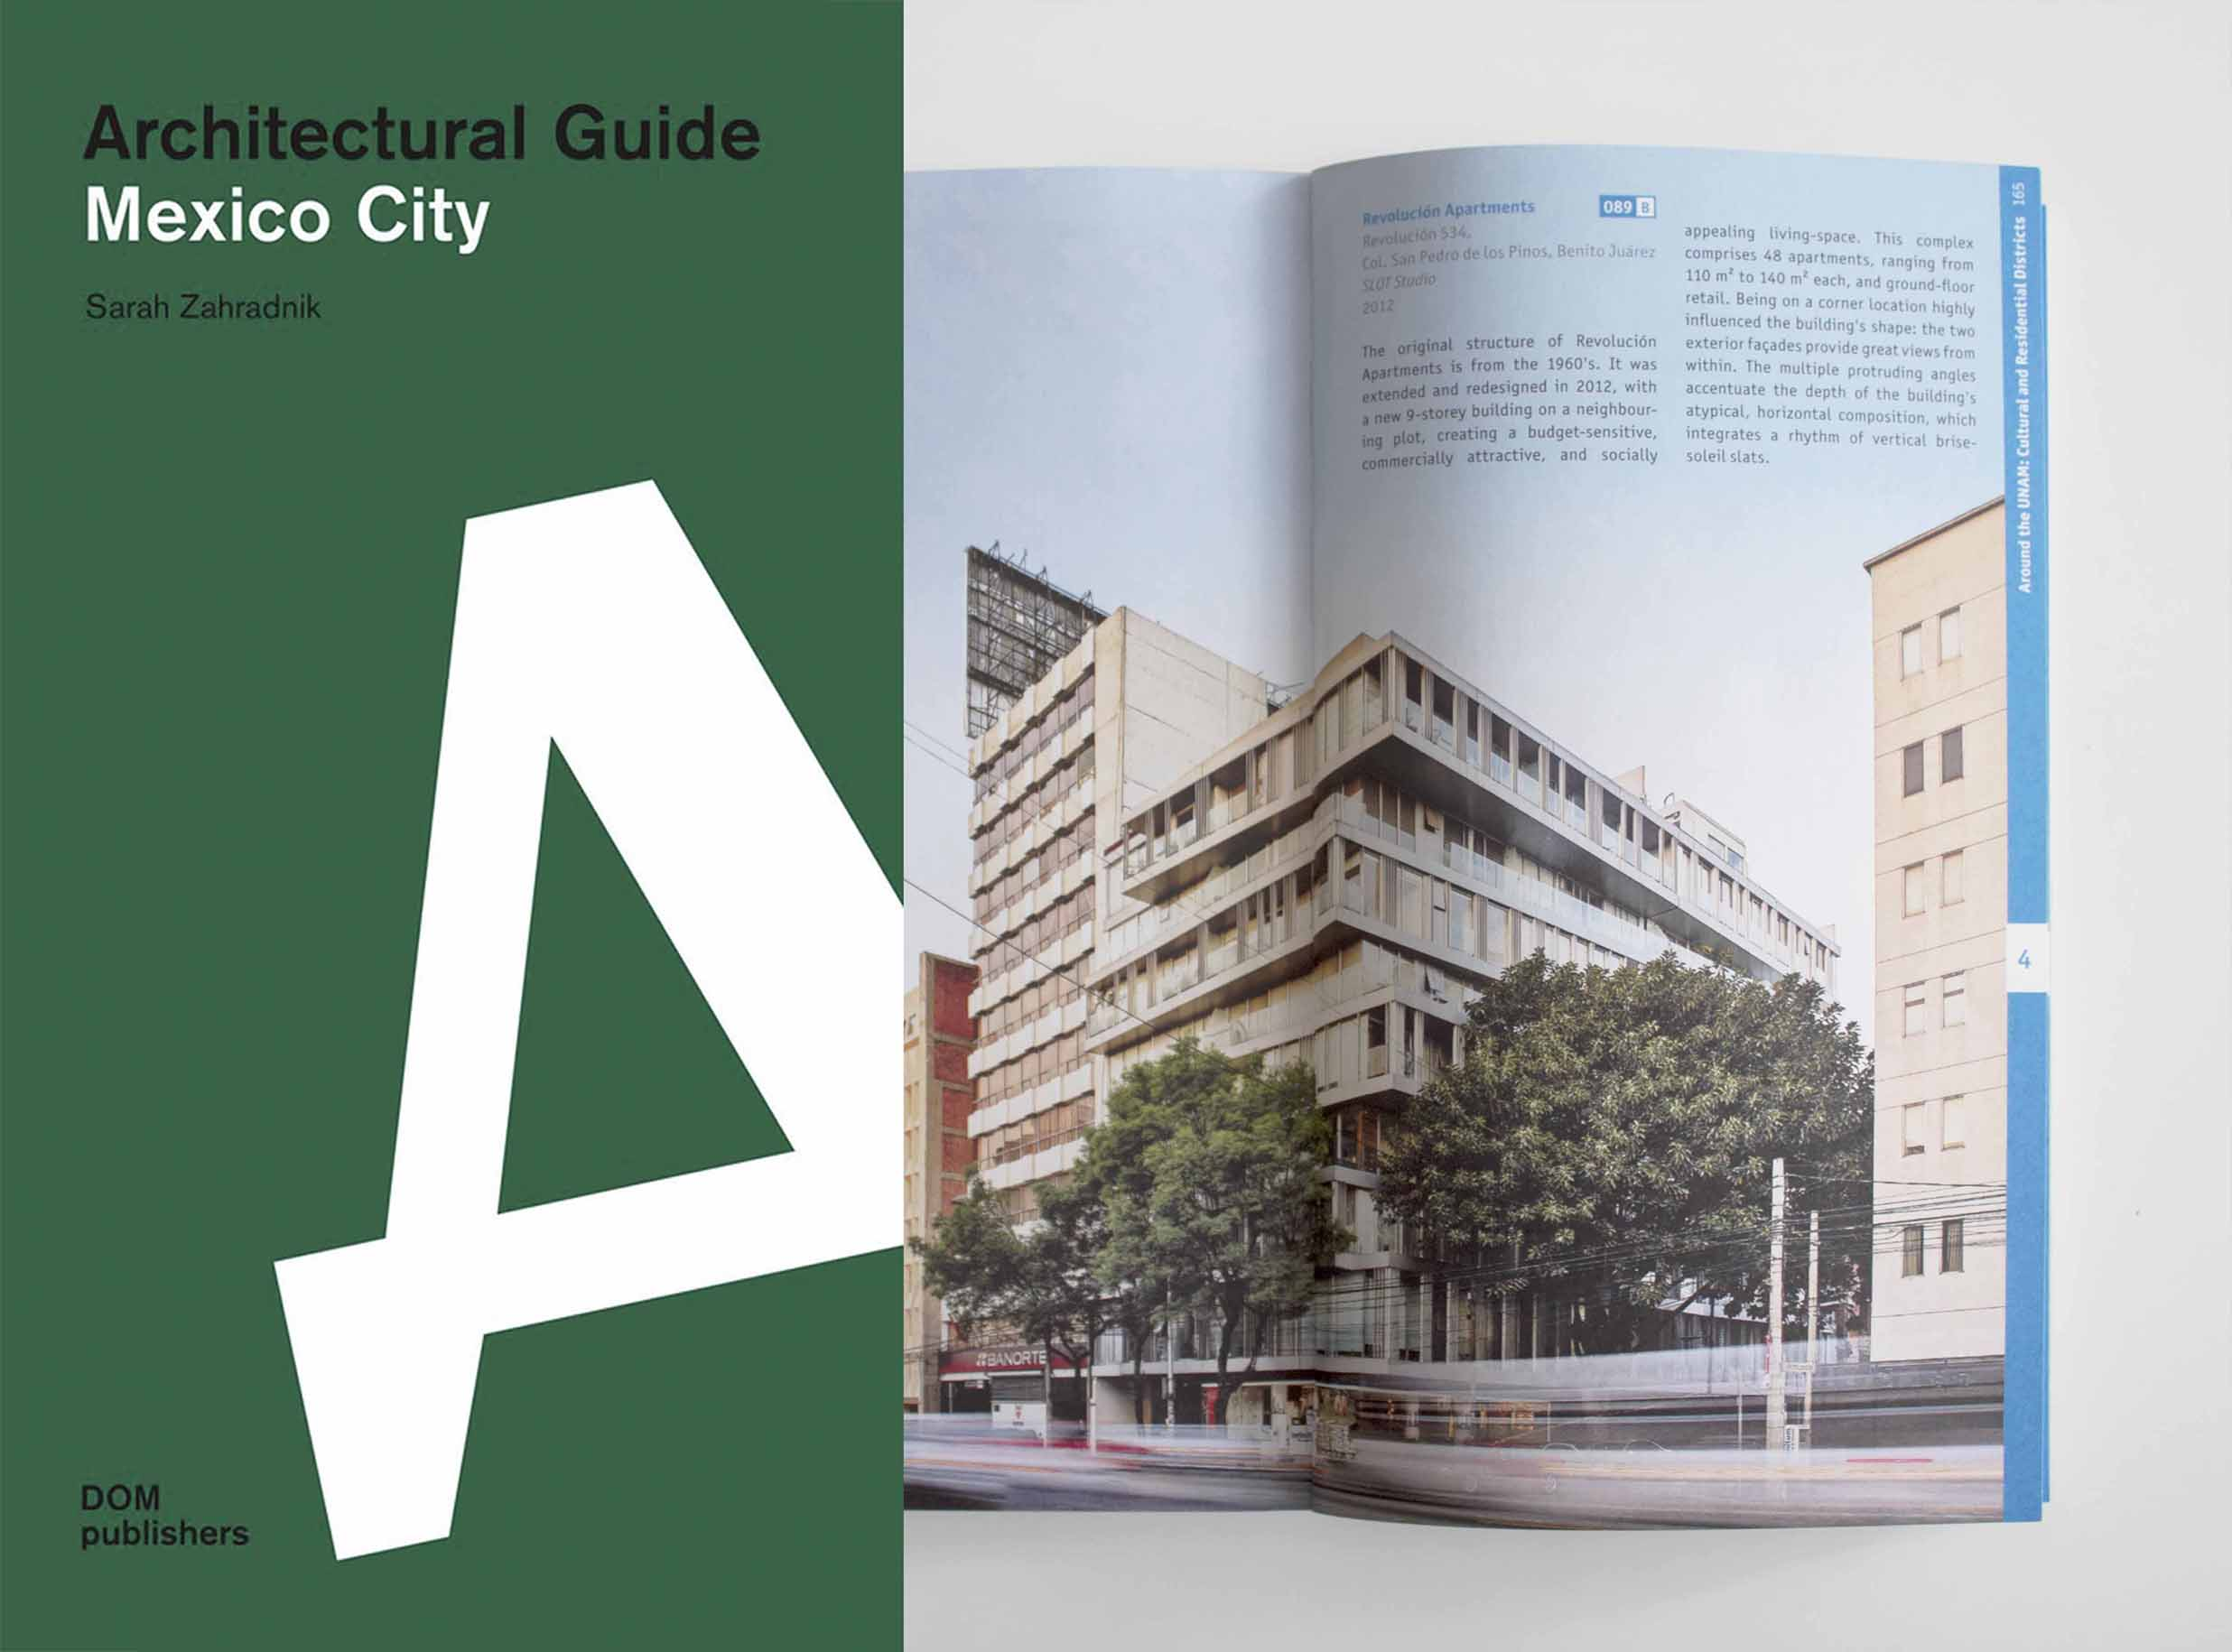 REVOLUCIÓN APARTMENTS FOUNDED IN ARCHITECTURAL GUIDE : SLOT